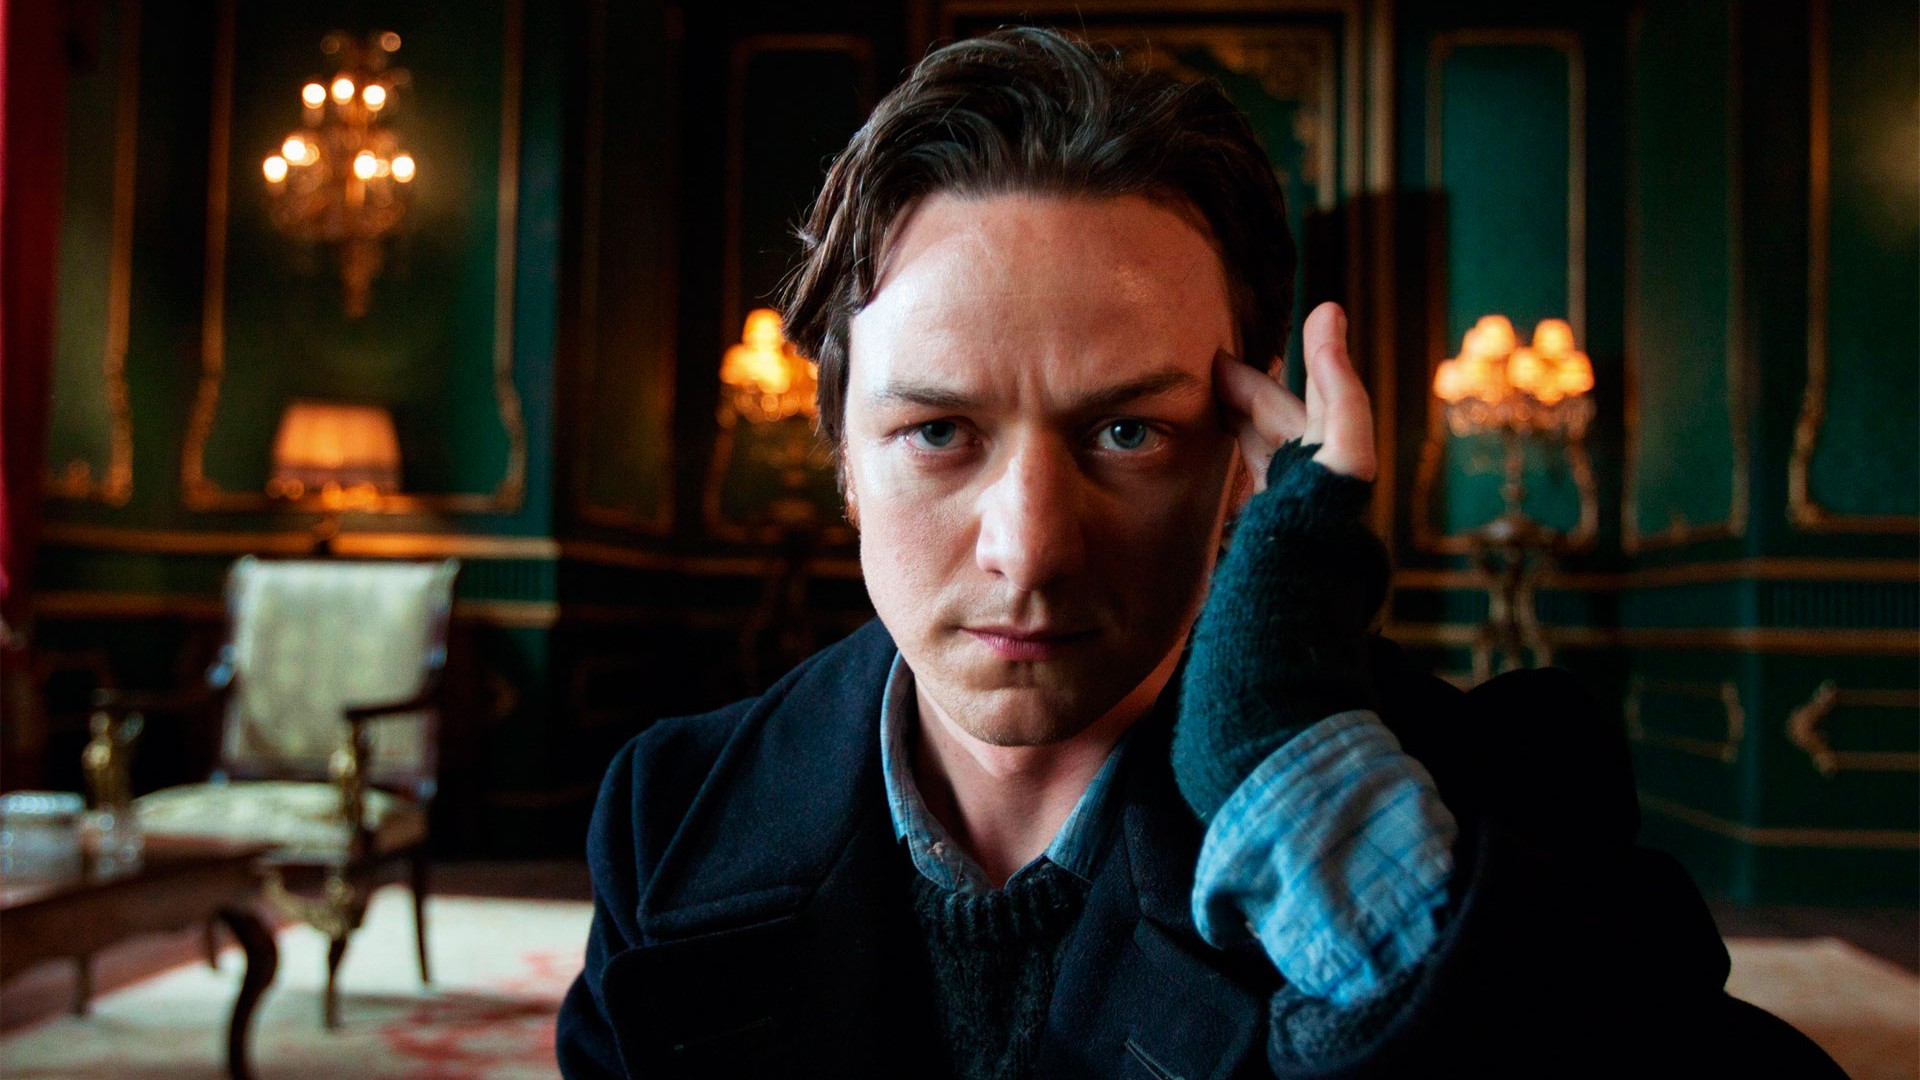 James McAvoy reprises his role as Professor Charles Xavier in X-Men: Apocalypse